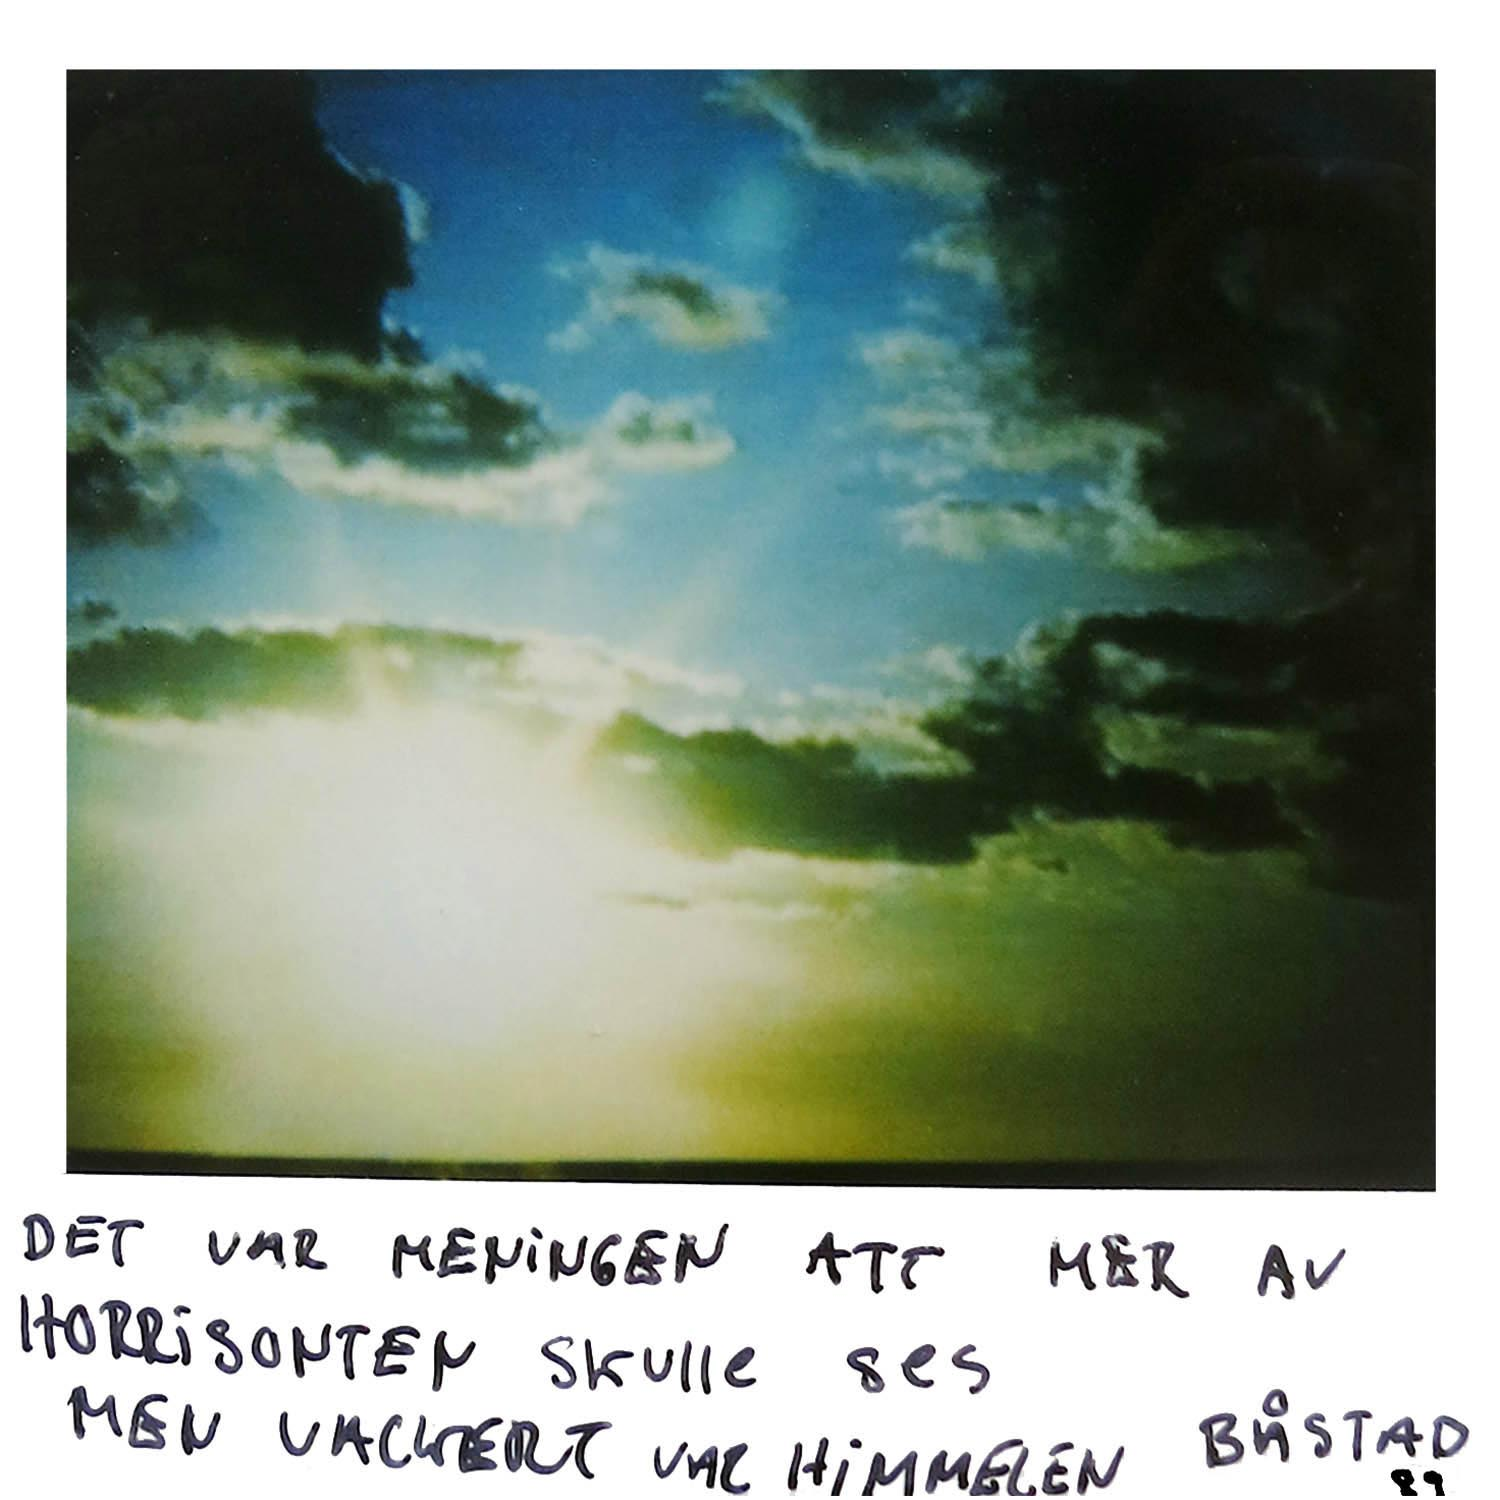 The meaning was that the horisont line should have been more visual, butbeautiful it was  Båstad -89